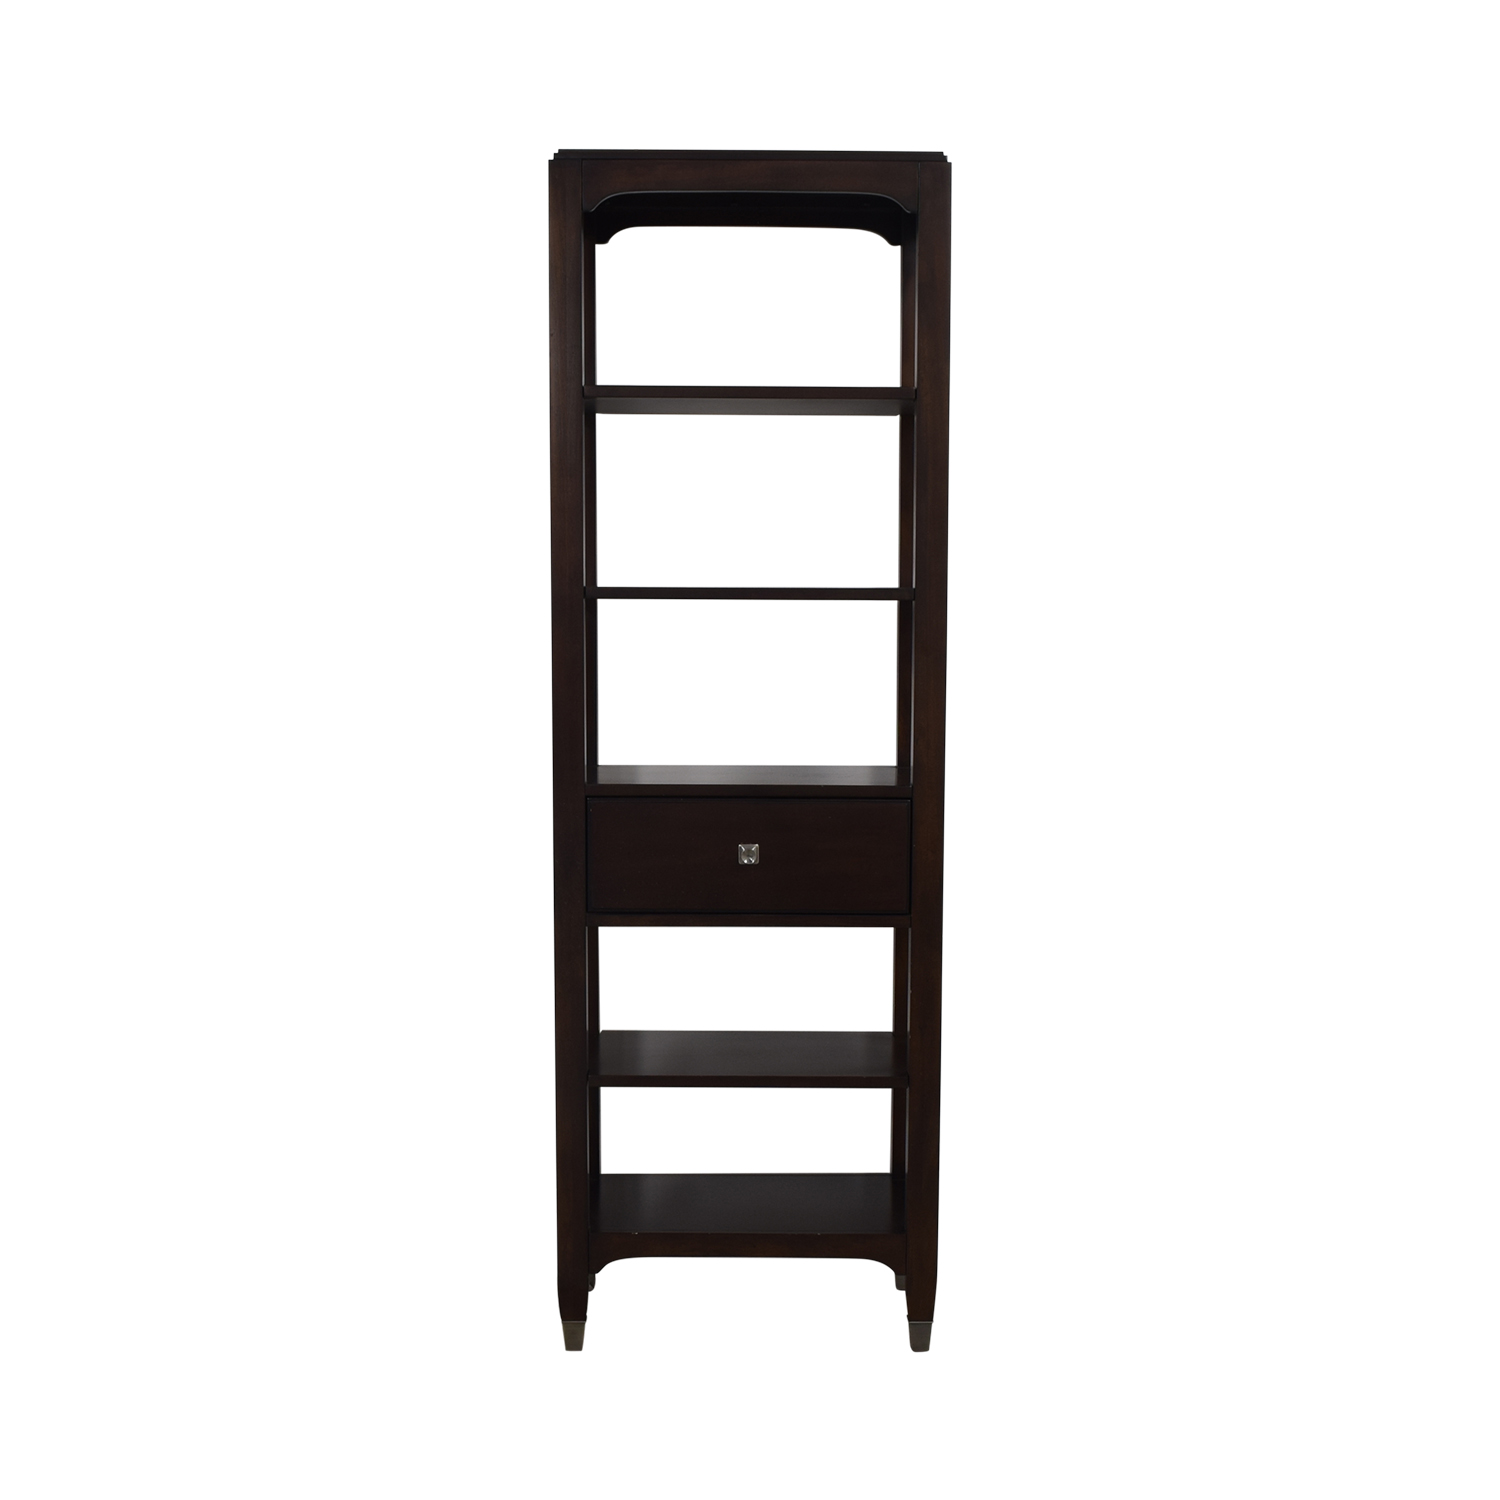 Bassett Furniture Tower Shelving sale